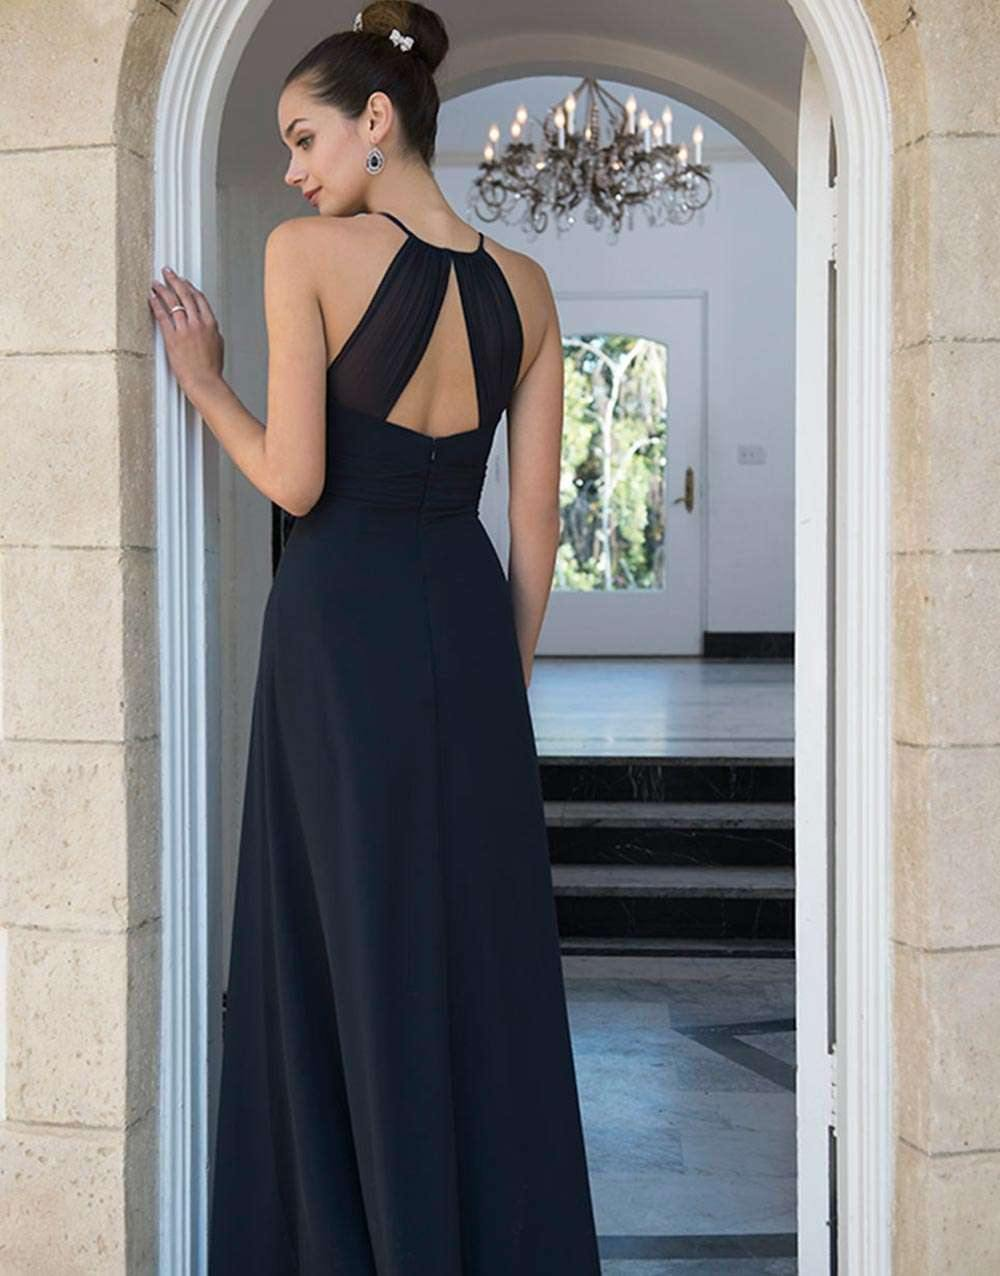 Fionne - Venus Occasion - Adore Bridal and Occasion Wear